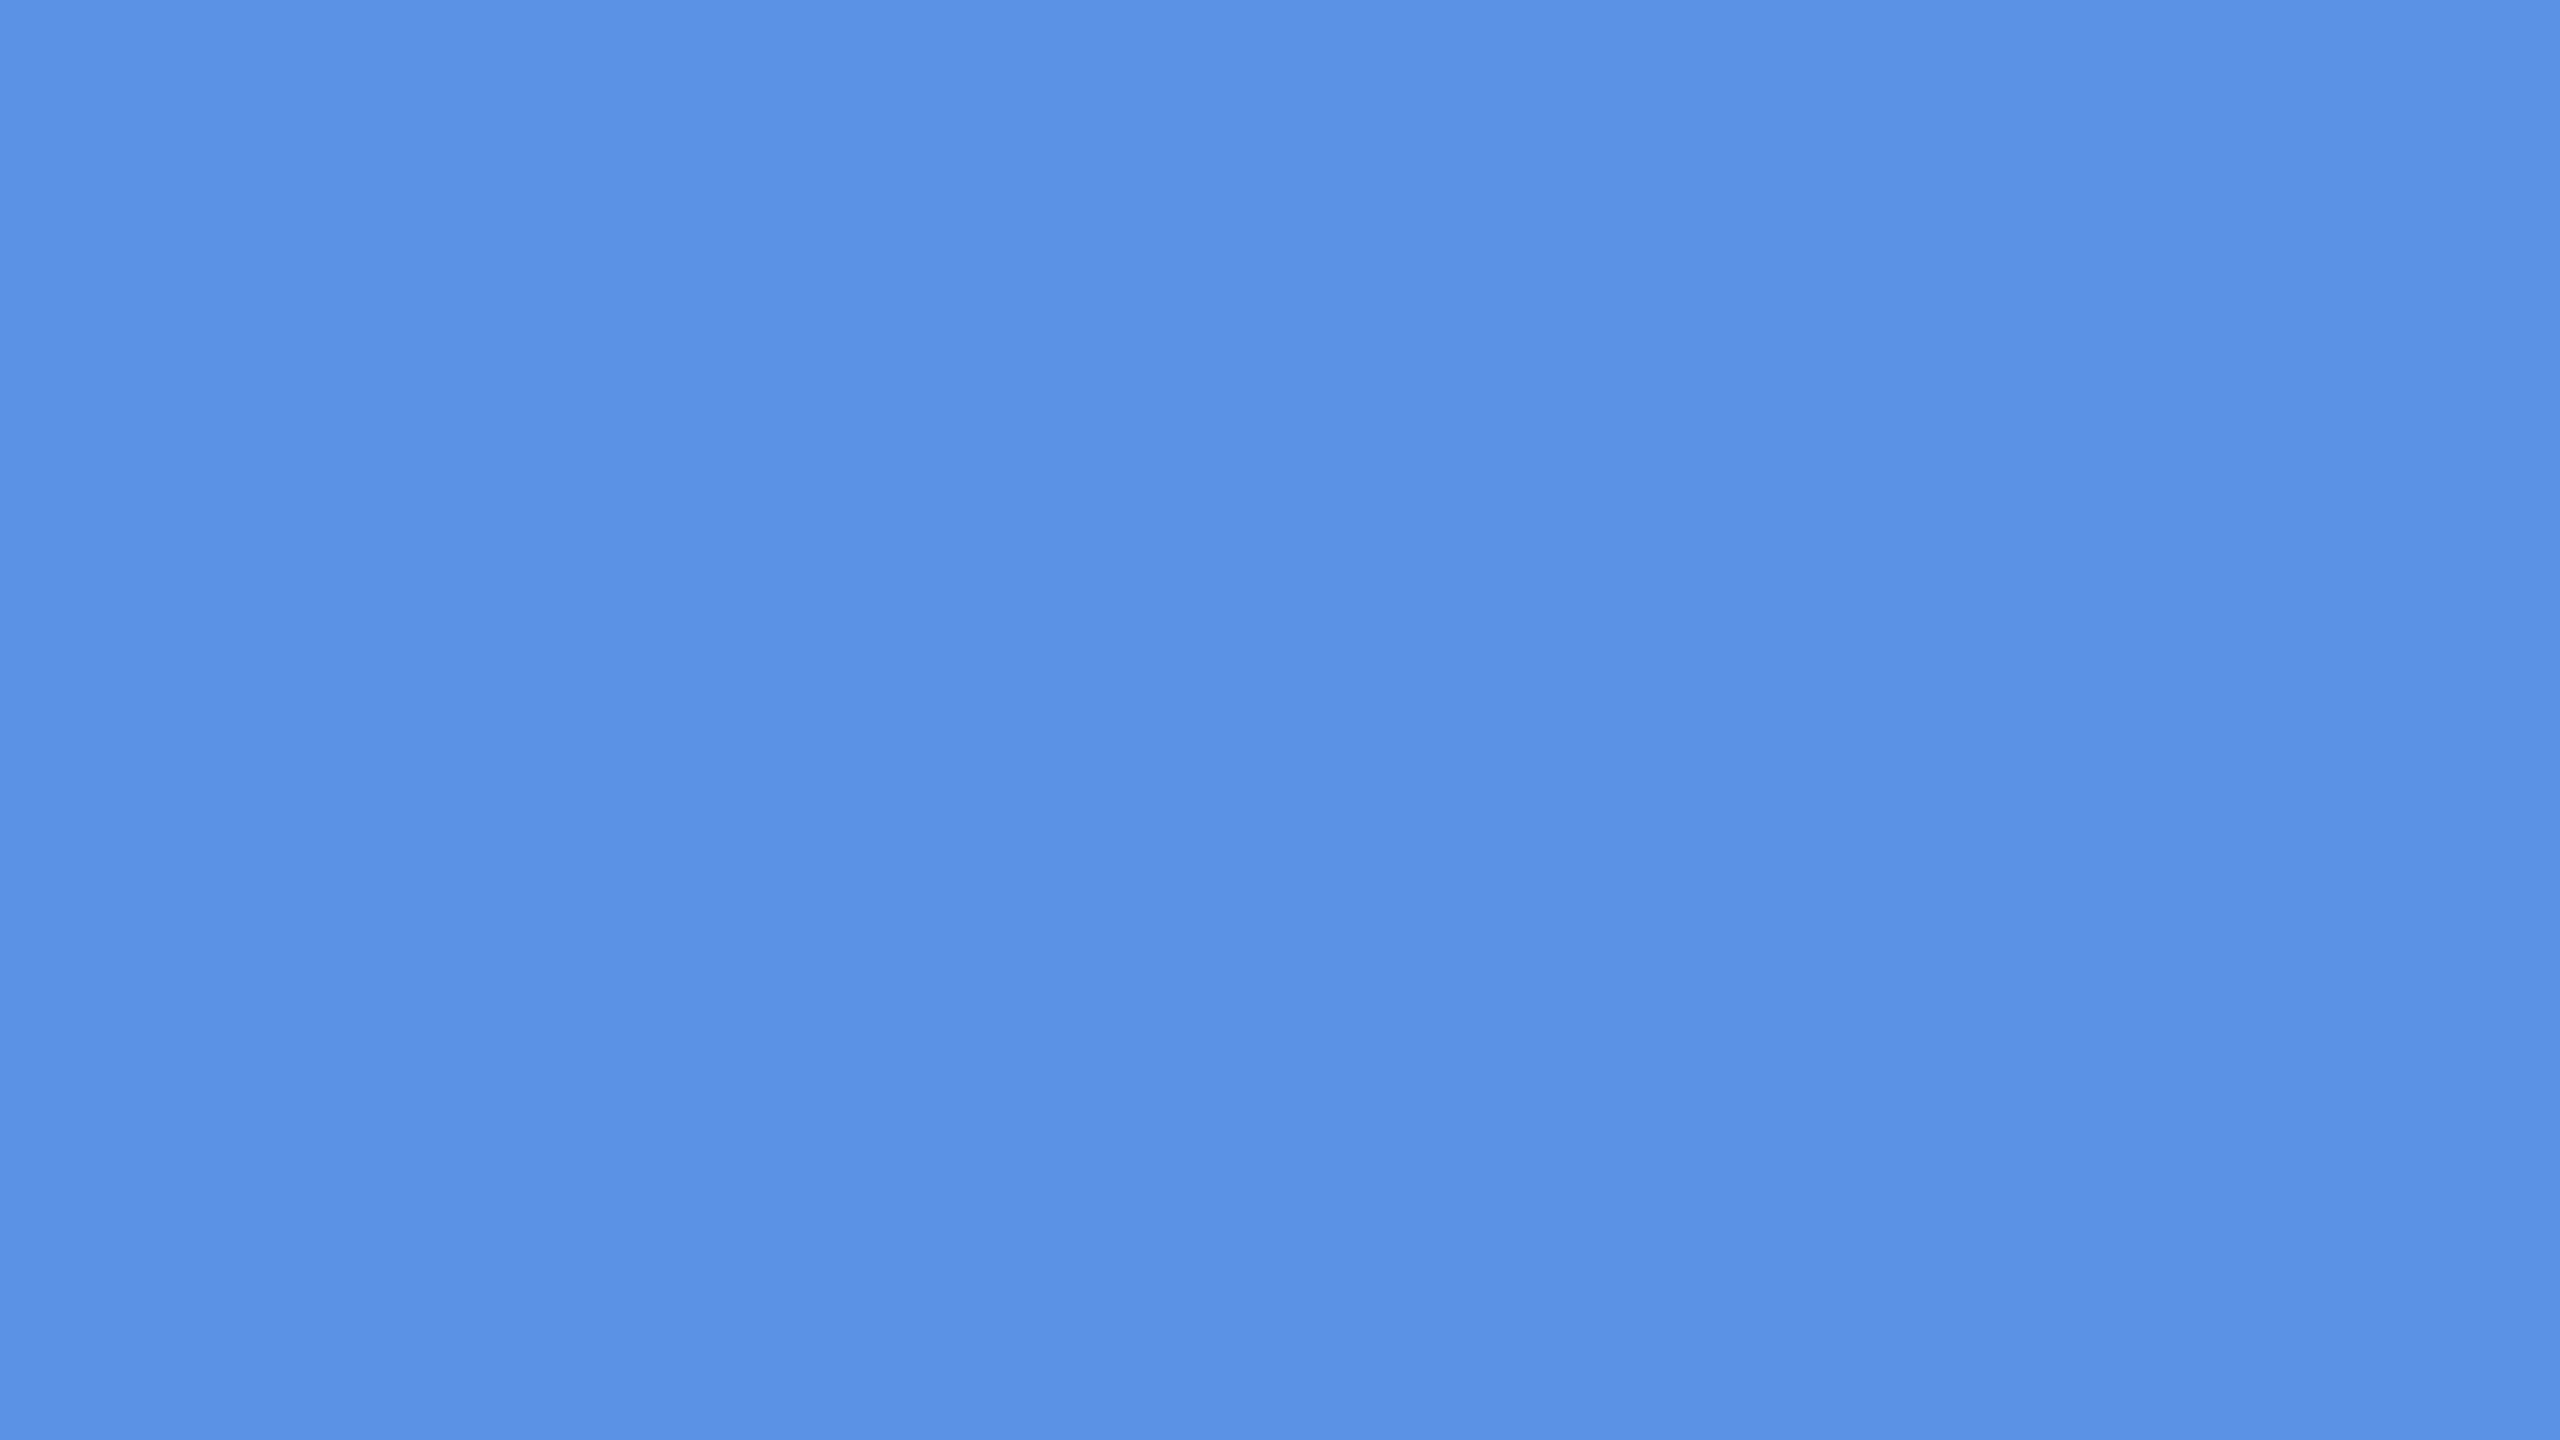 2560x1440 United Nations Blue Solid Color Background